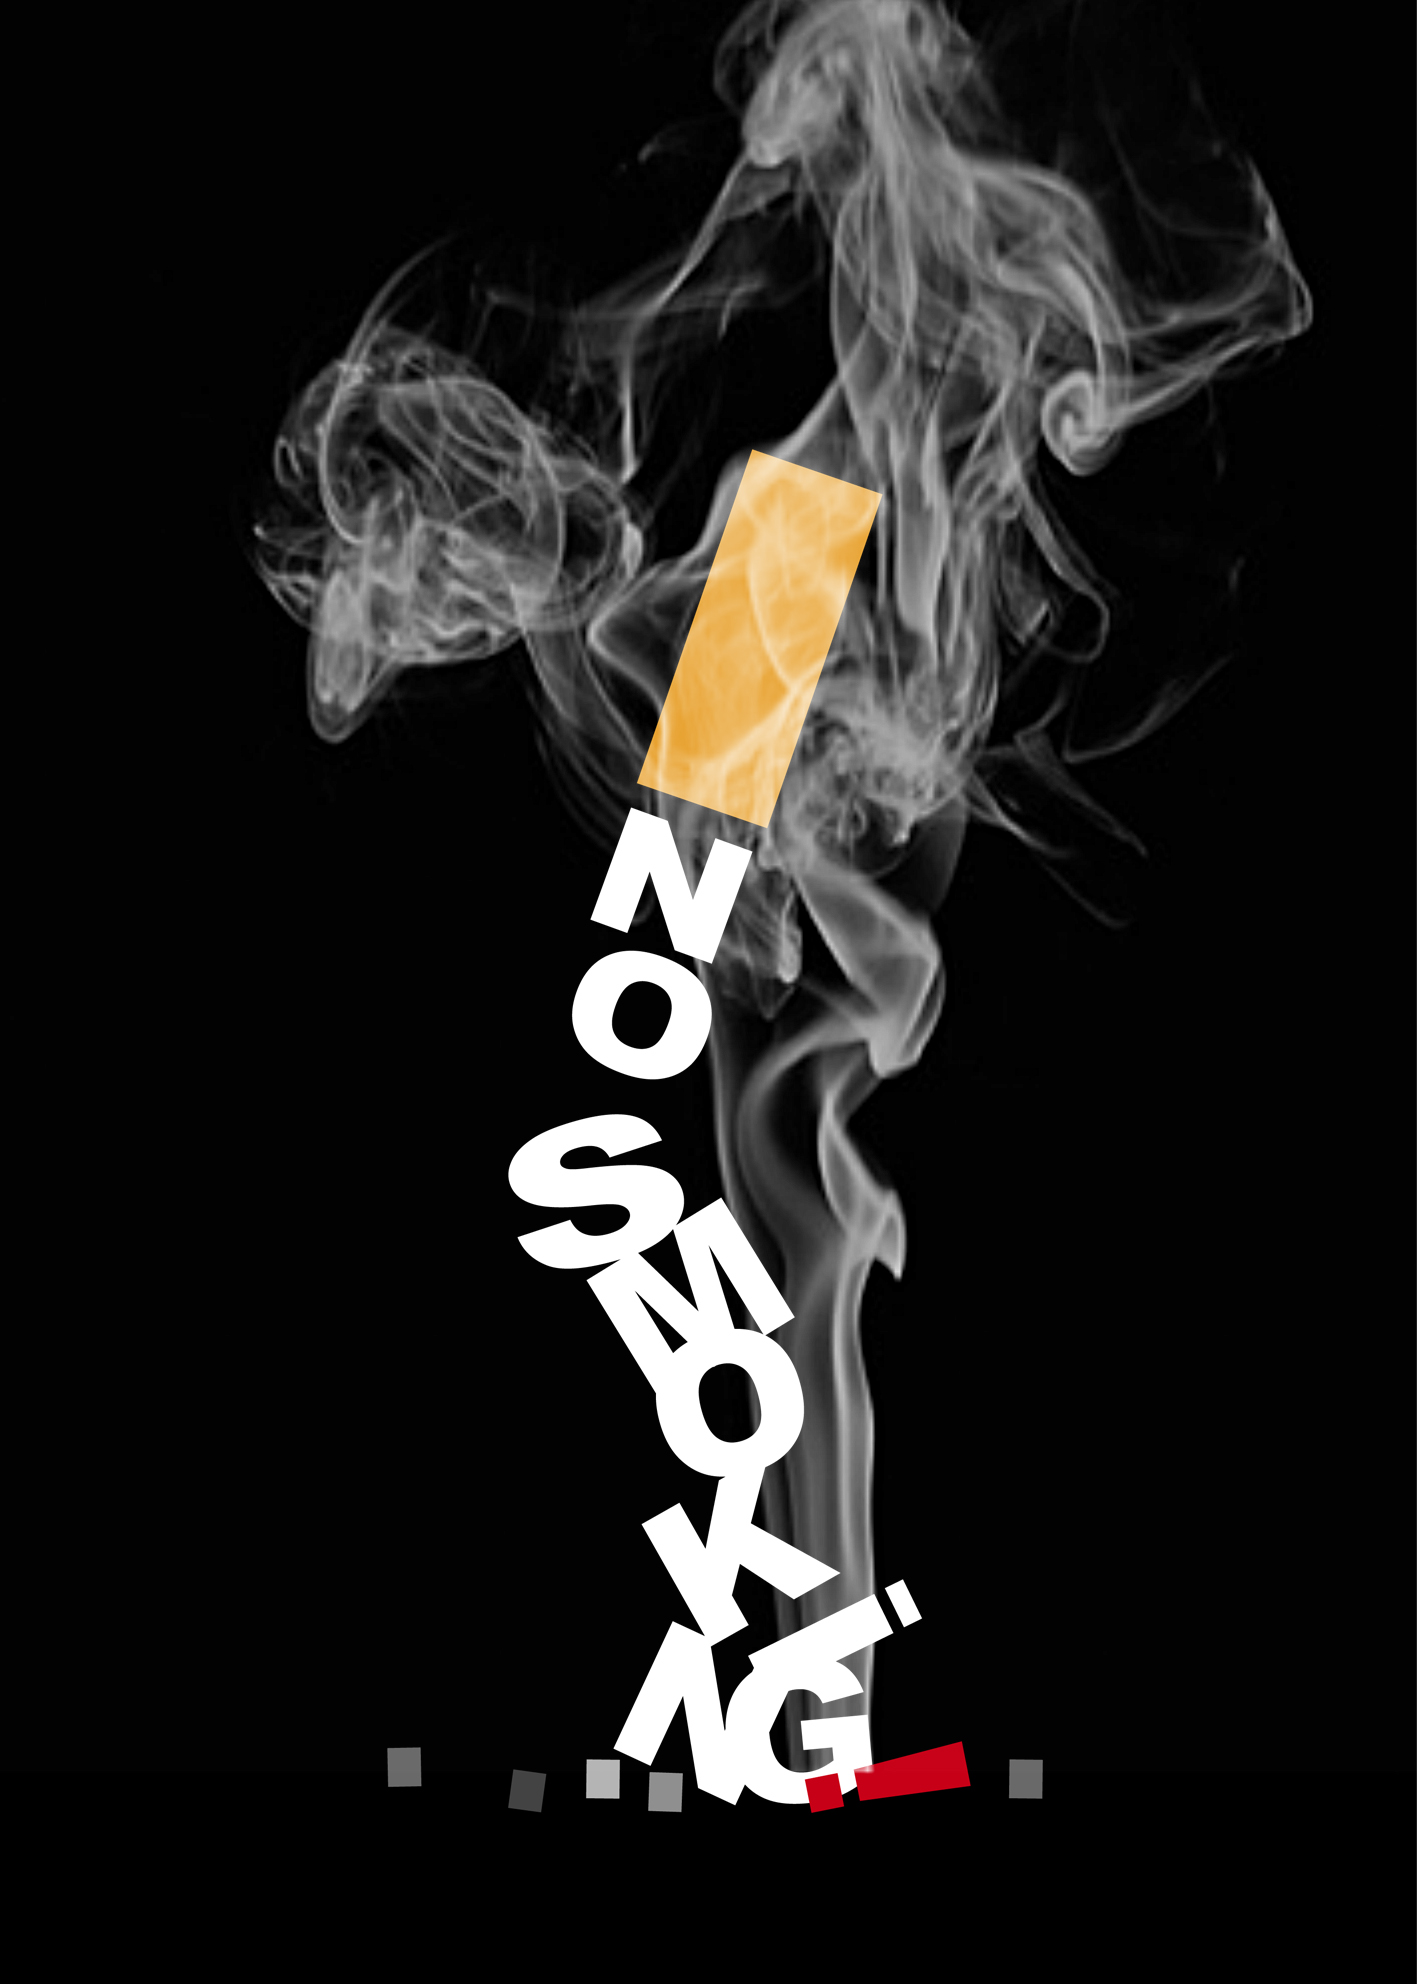 Best 45 Non Smoking Wallpaper on HipWallpaper Non Working 1417x1984